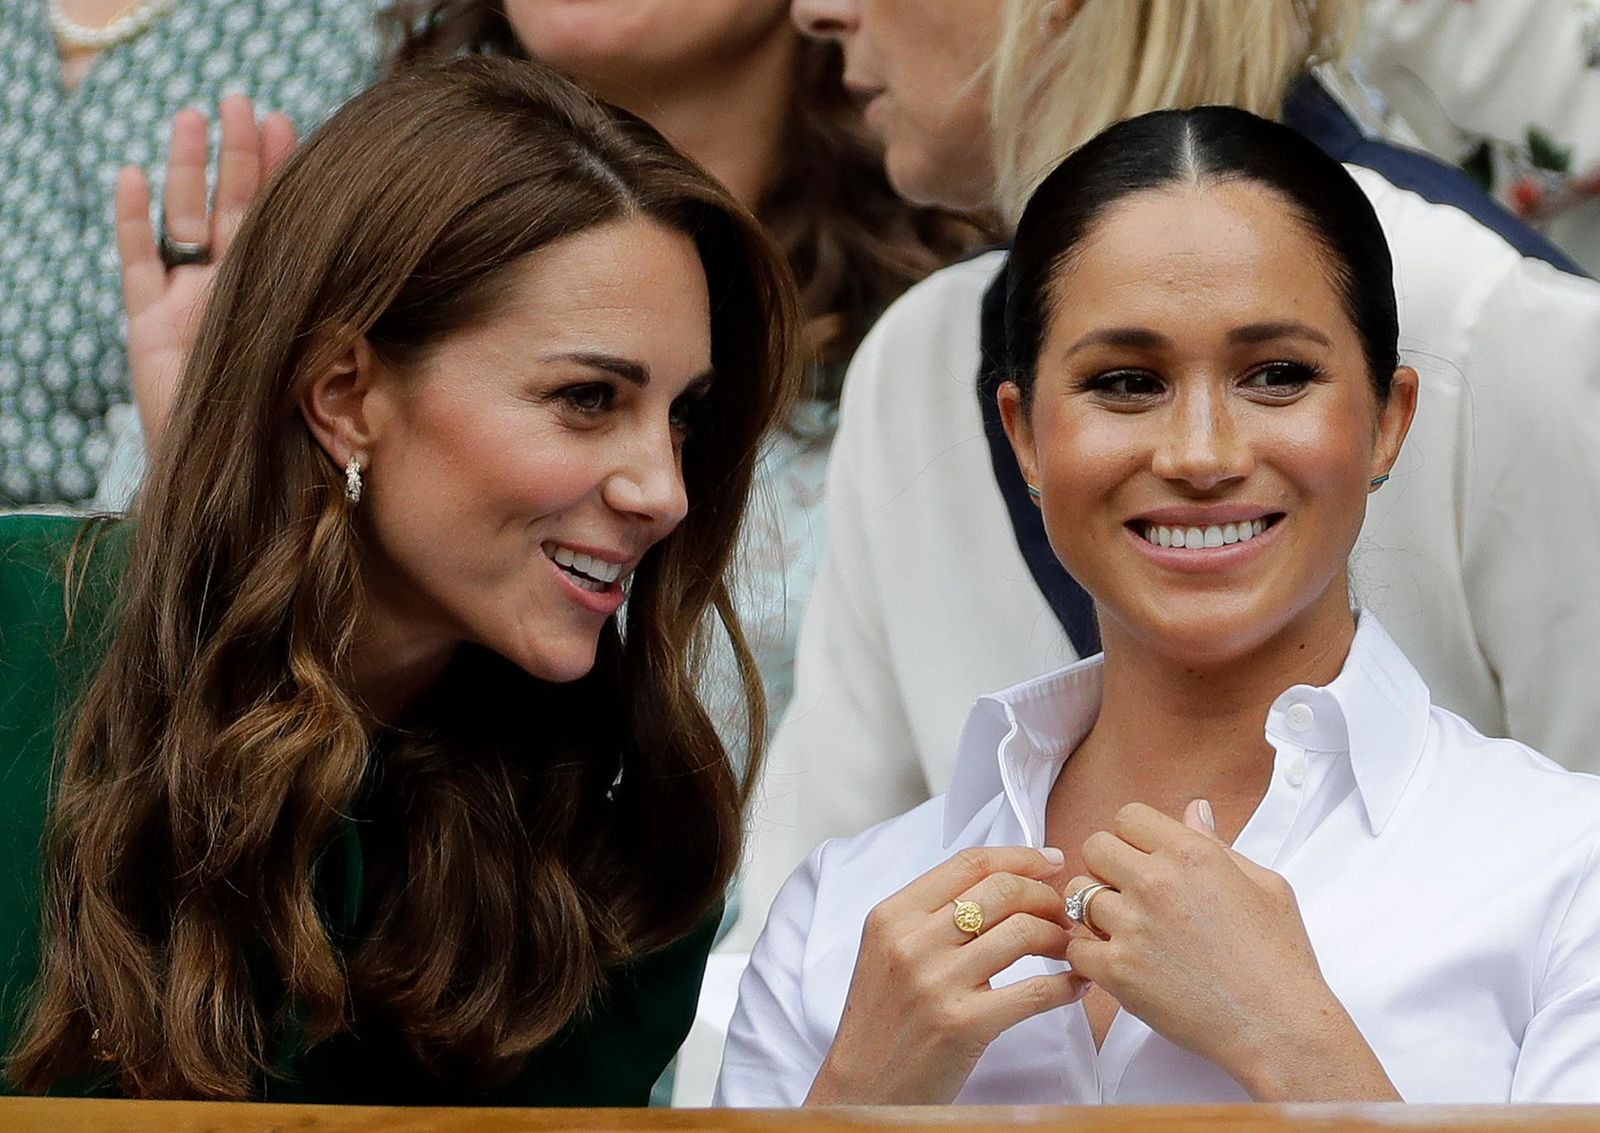 Kate, Duchess of Cambridge, left, and Meghan, Duchess of Sussex chat as they sit in the Royal Box on Centre Court to watch the women's singles final match between Serena Williams of the United States and Romania's Simona Halep on day twelve of the Wimbledon Tennis Championships in London, Saturday, July 13, 2019. (AP Photo/Ben Curtis)